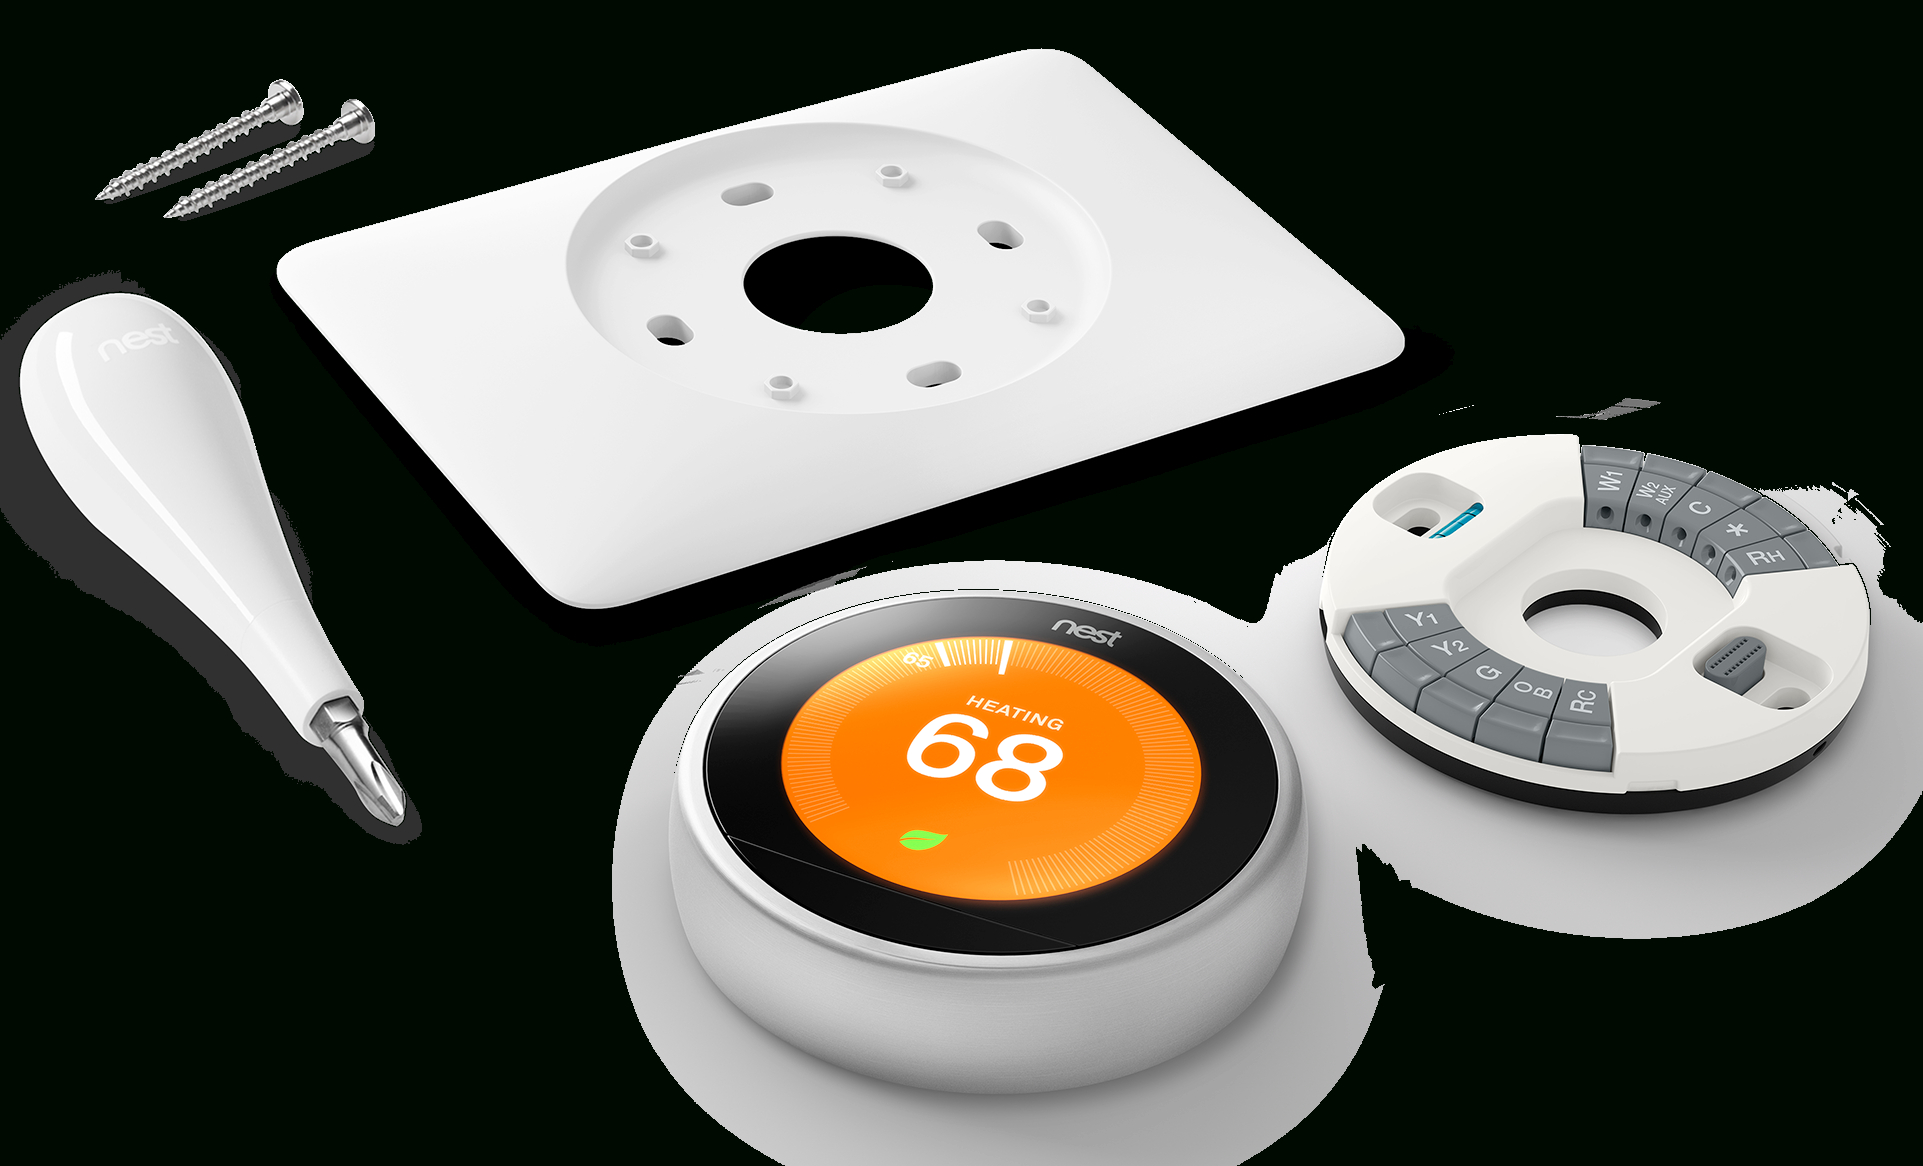 How To Install Your Nest Thermostat - How Should I Have The Nest 3 Generation Wiring Diagram